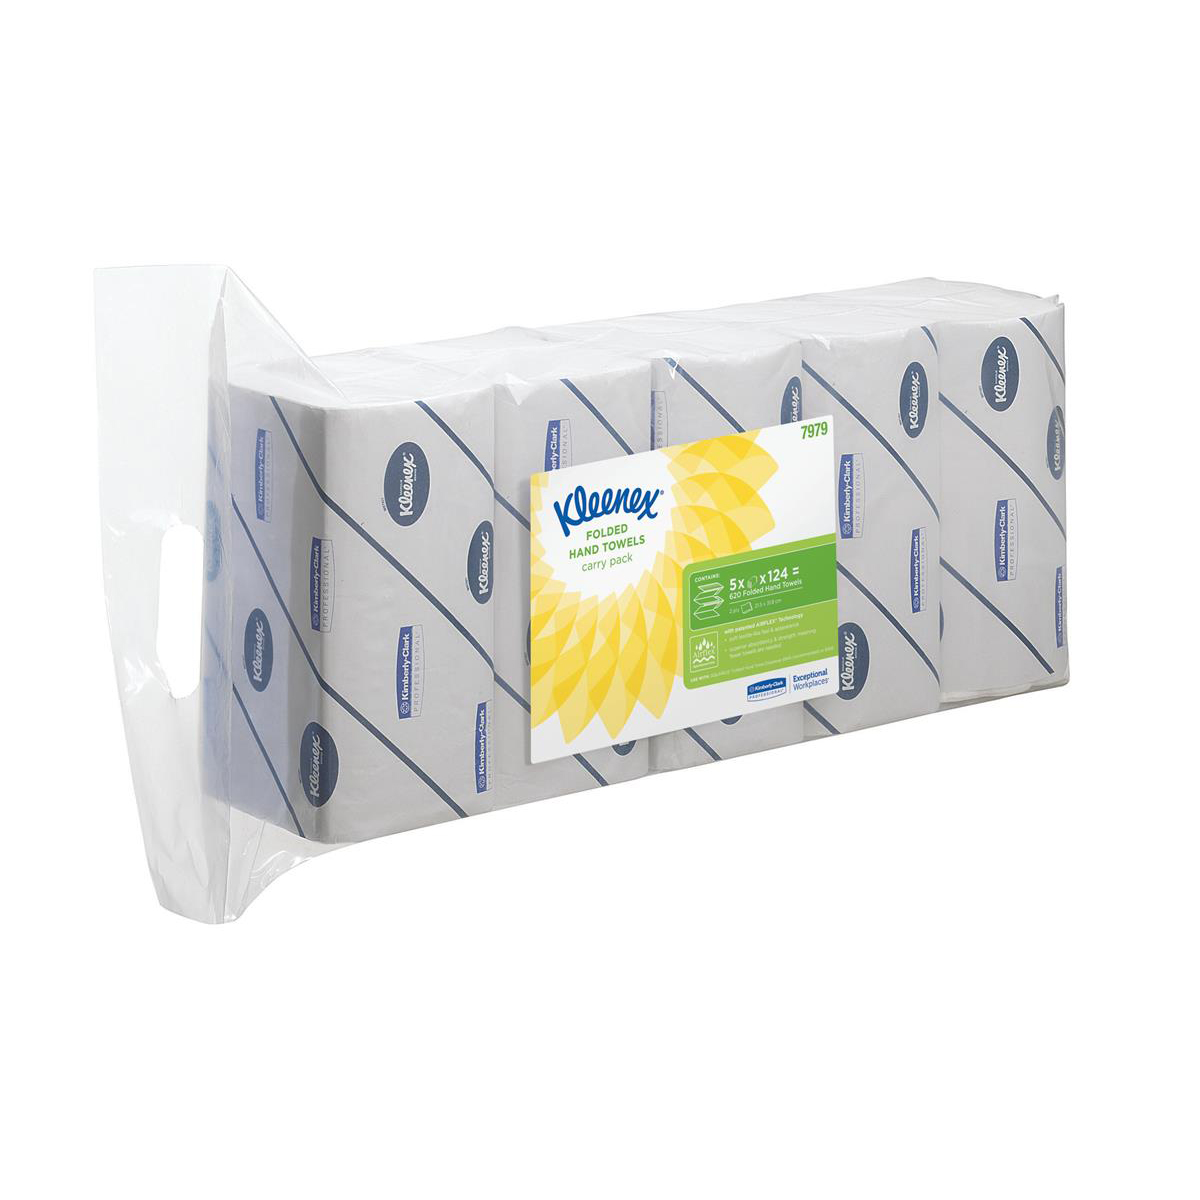 Kleenex Ultra Hand Towels 2-ply 215x315mm 124 Towels per Sleeve White Ref 7979 Pack 5